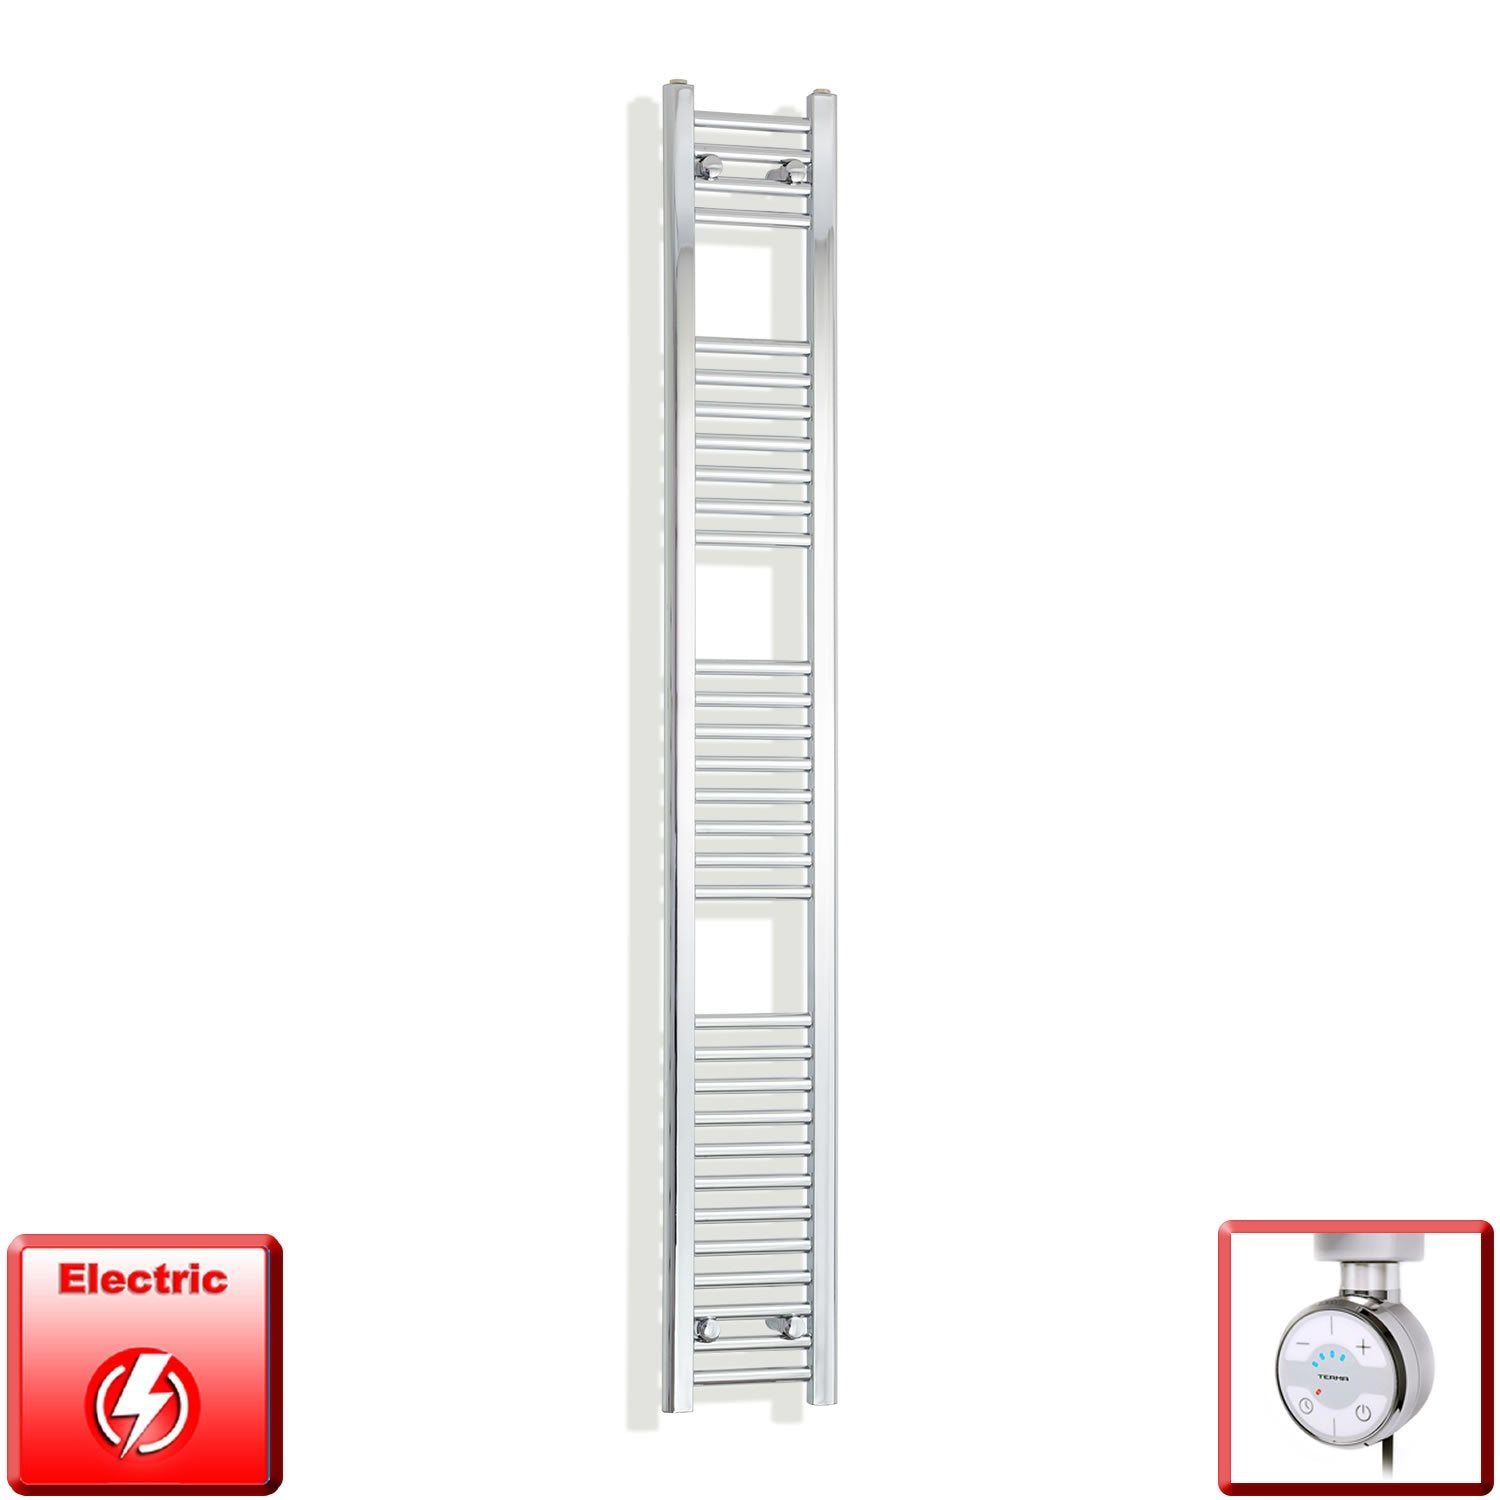 200mm Wide 1800mm High Flat Chrome Pre-Filled Electric Heated Towel Rail Radiator HTR,MOA Thermostatic Element